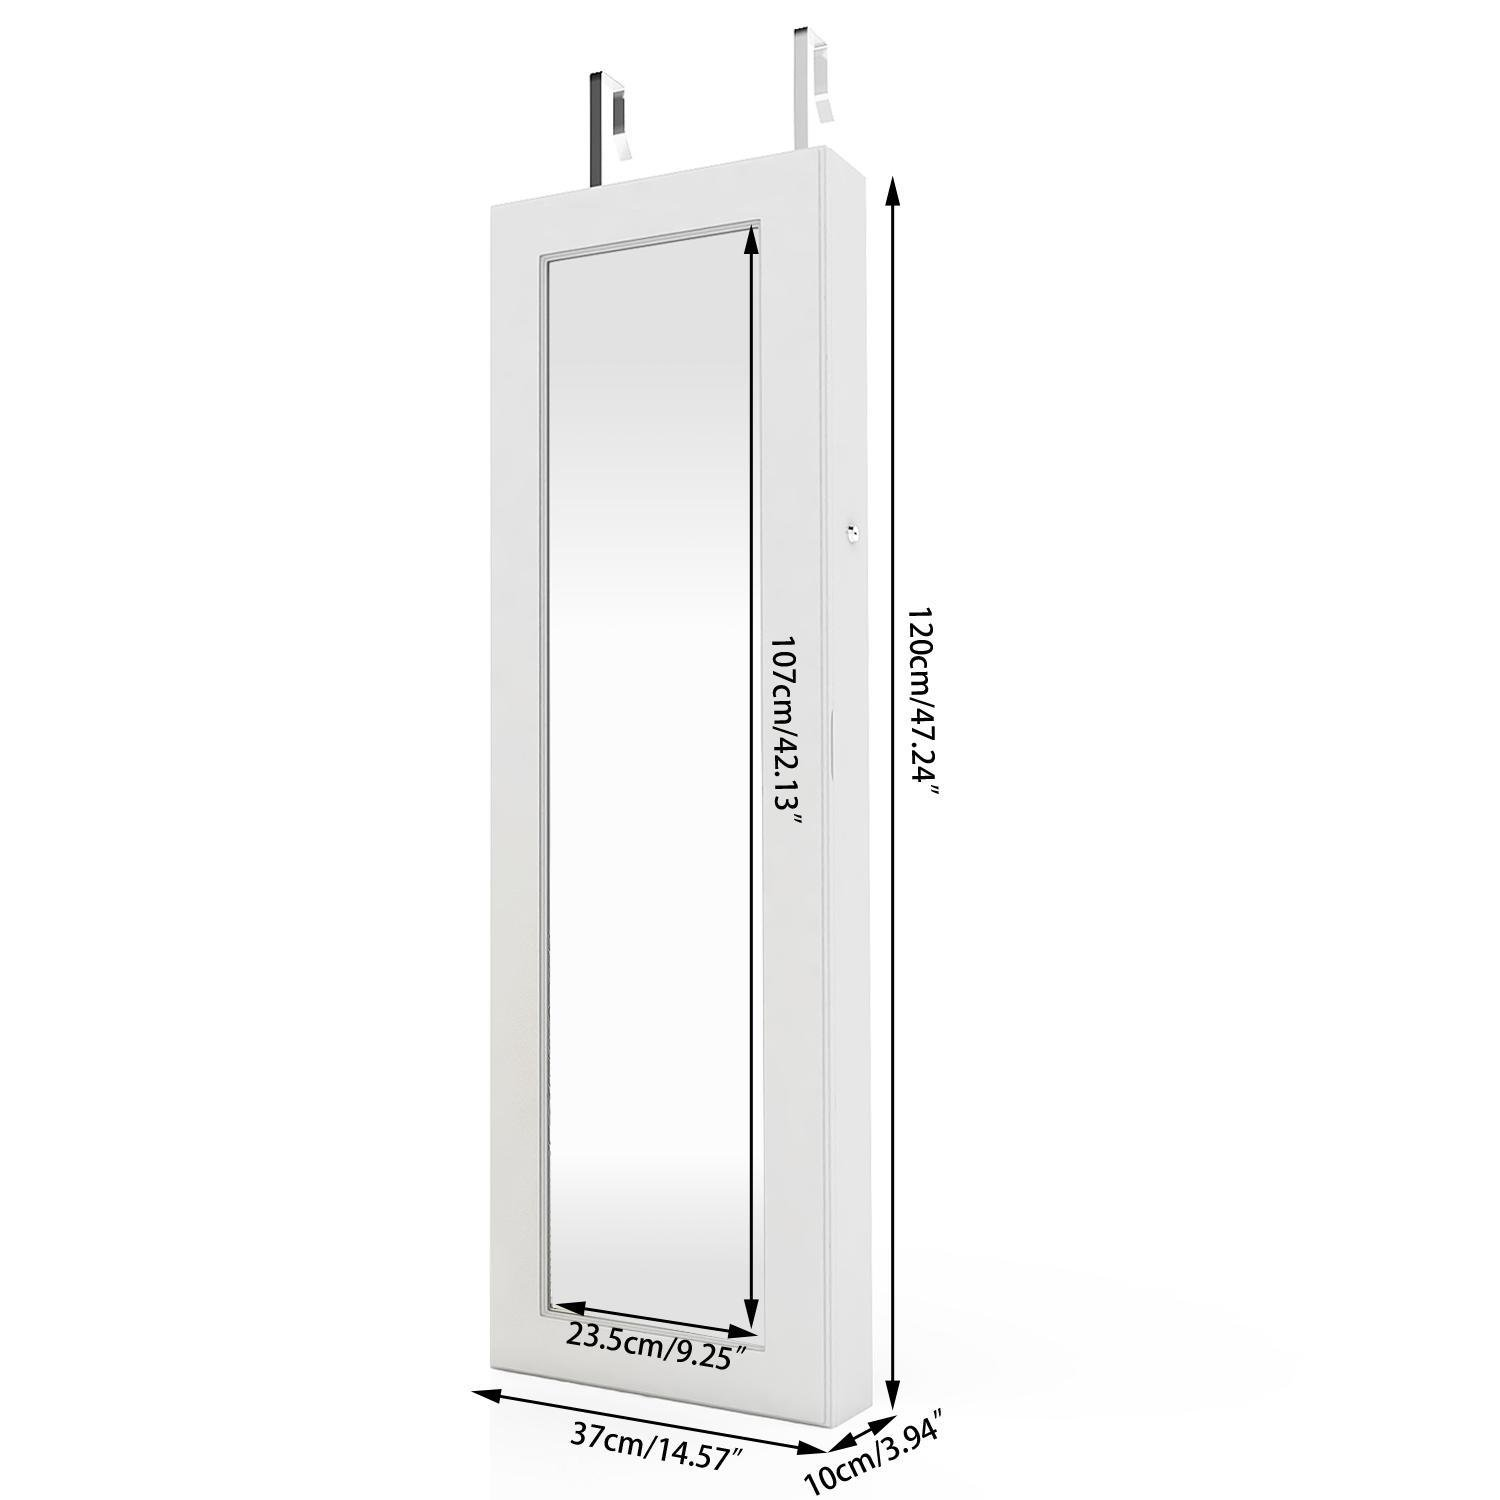 Elever Space Save Jewelry Cabinet - Large Storage Capacity- Lockable White Jewelry Armoire W/ Key - LED Jewelry Holder Organizer Wall Door Mount by Elever (Image #7)